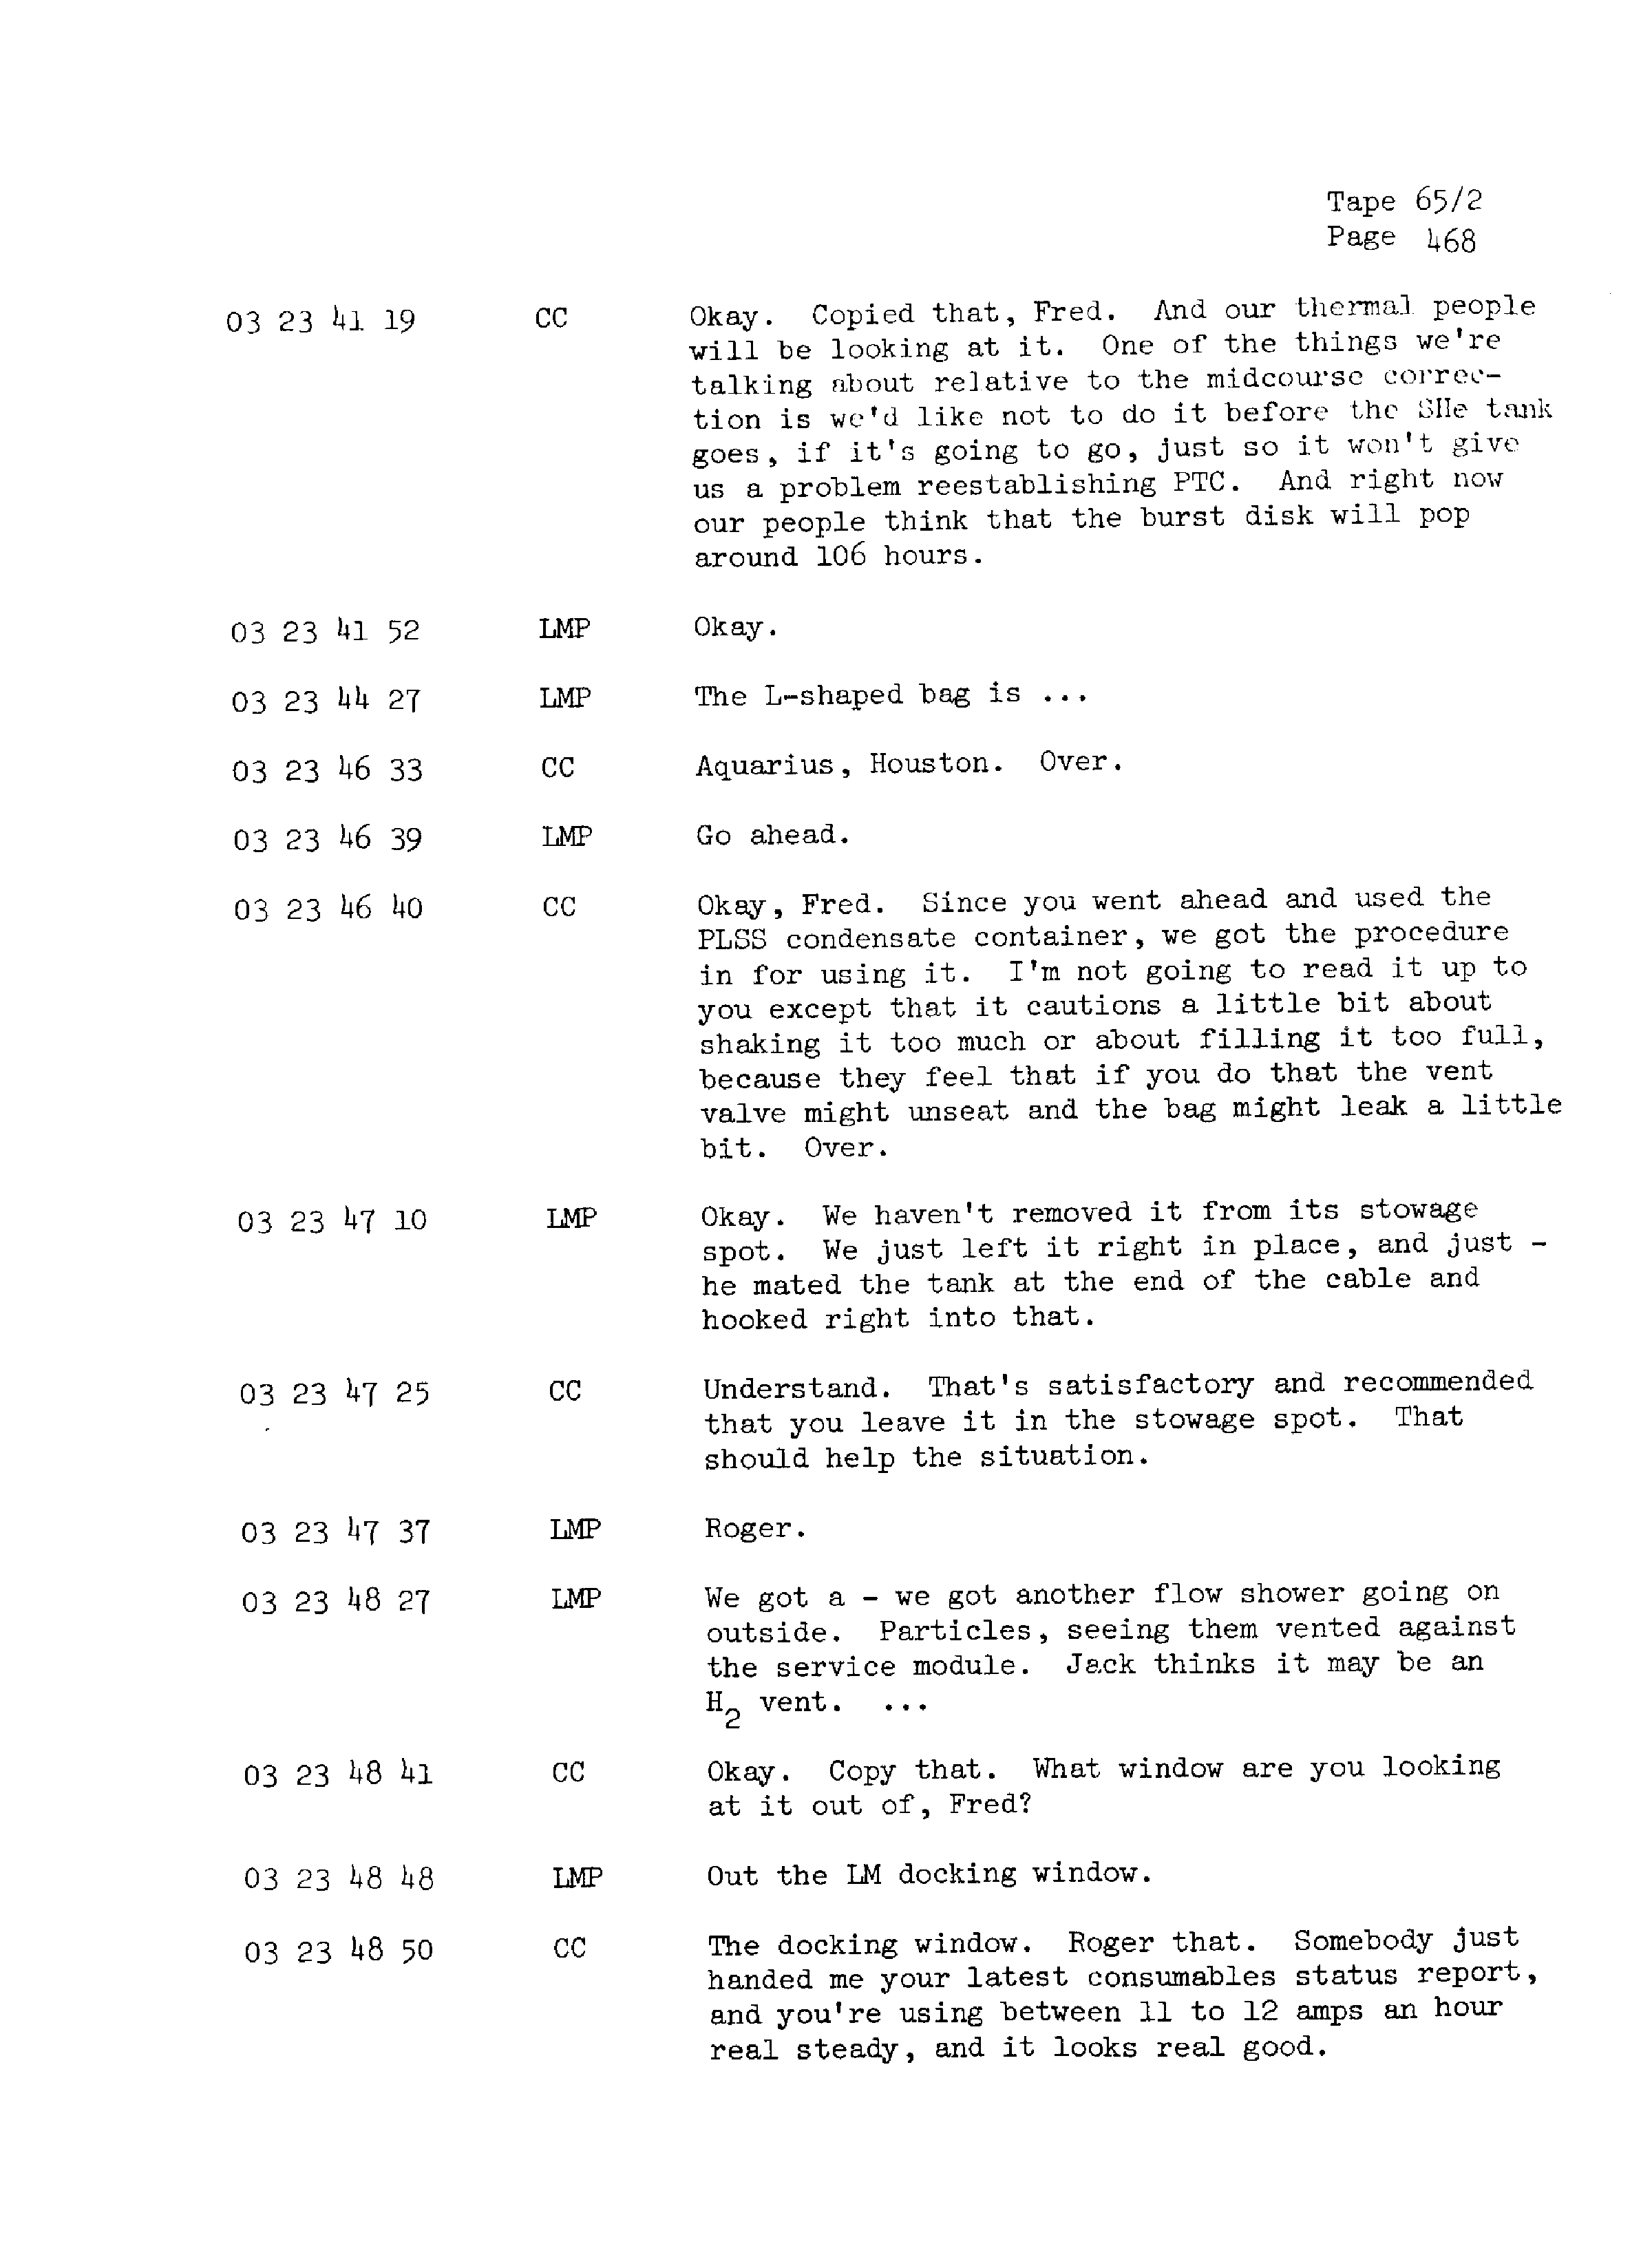 Page 475 of Apollo 13's original transcript